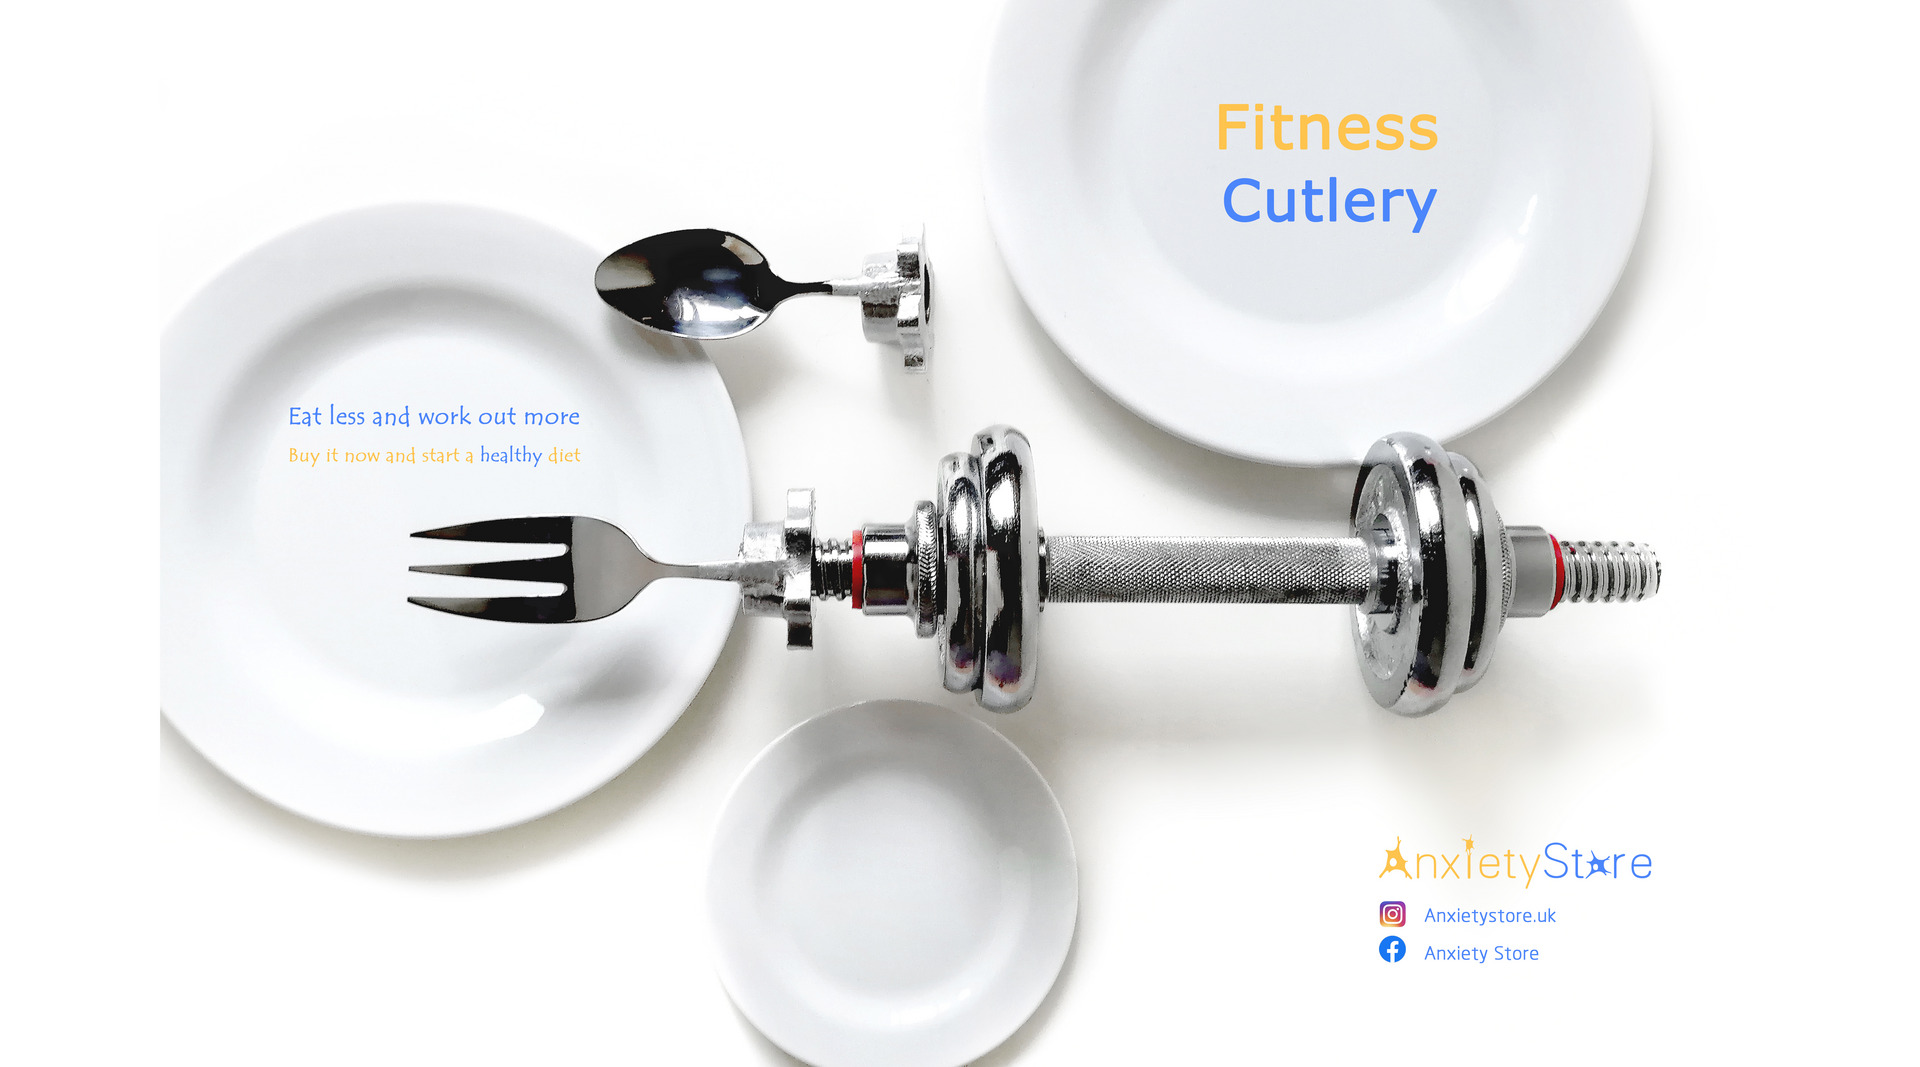 A poster of fitness cutlery